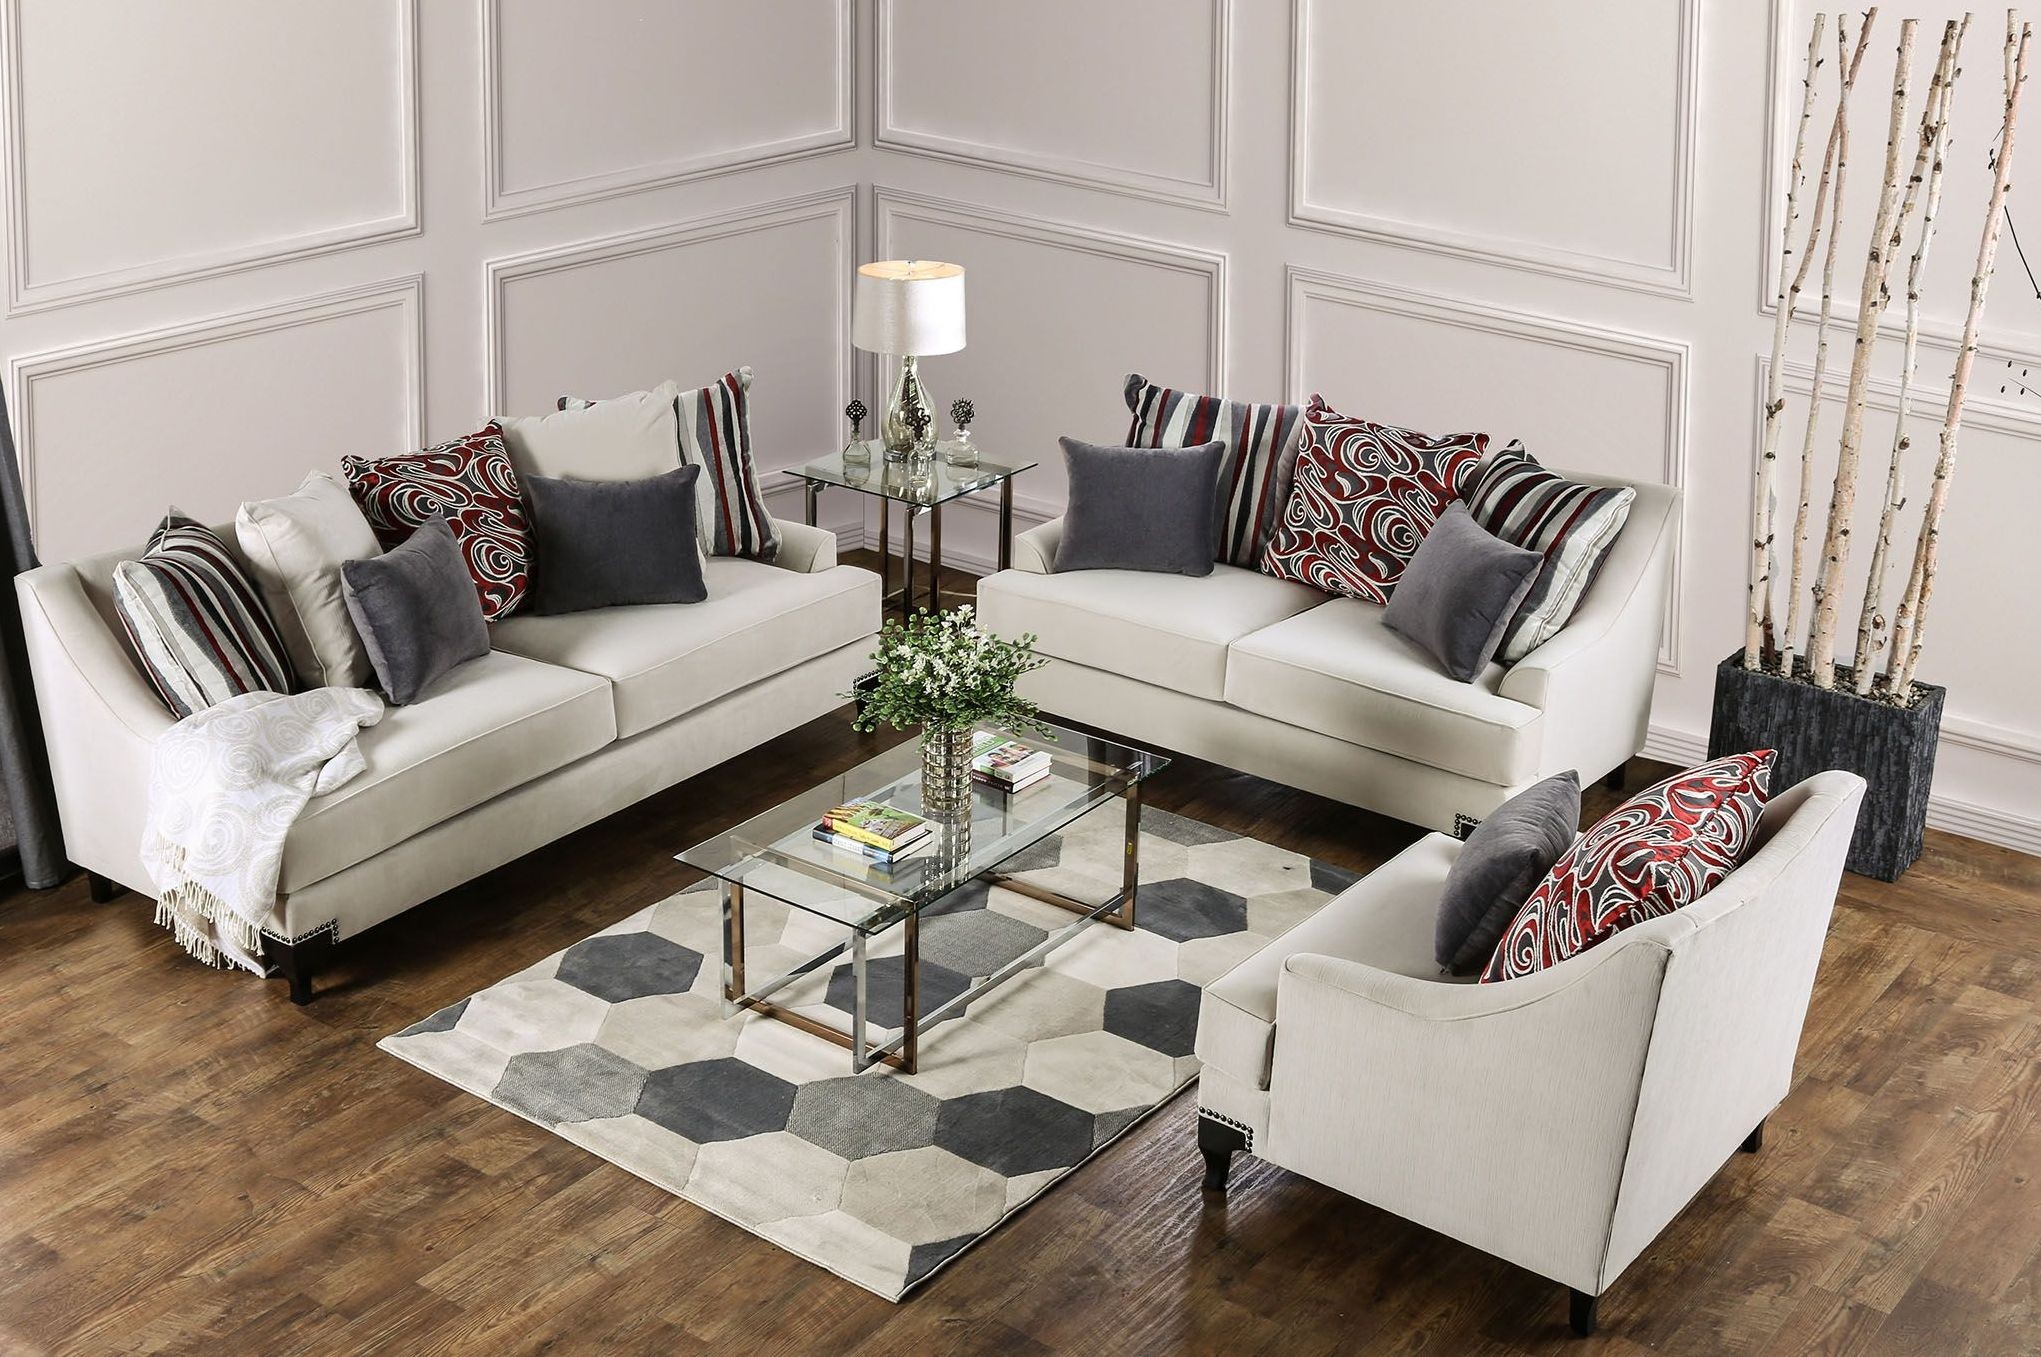 Furniture Of America Viscontti Ivory Upholstered Living